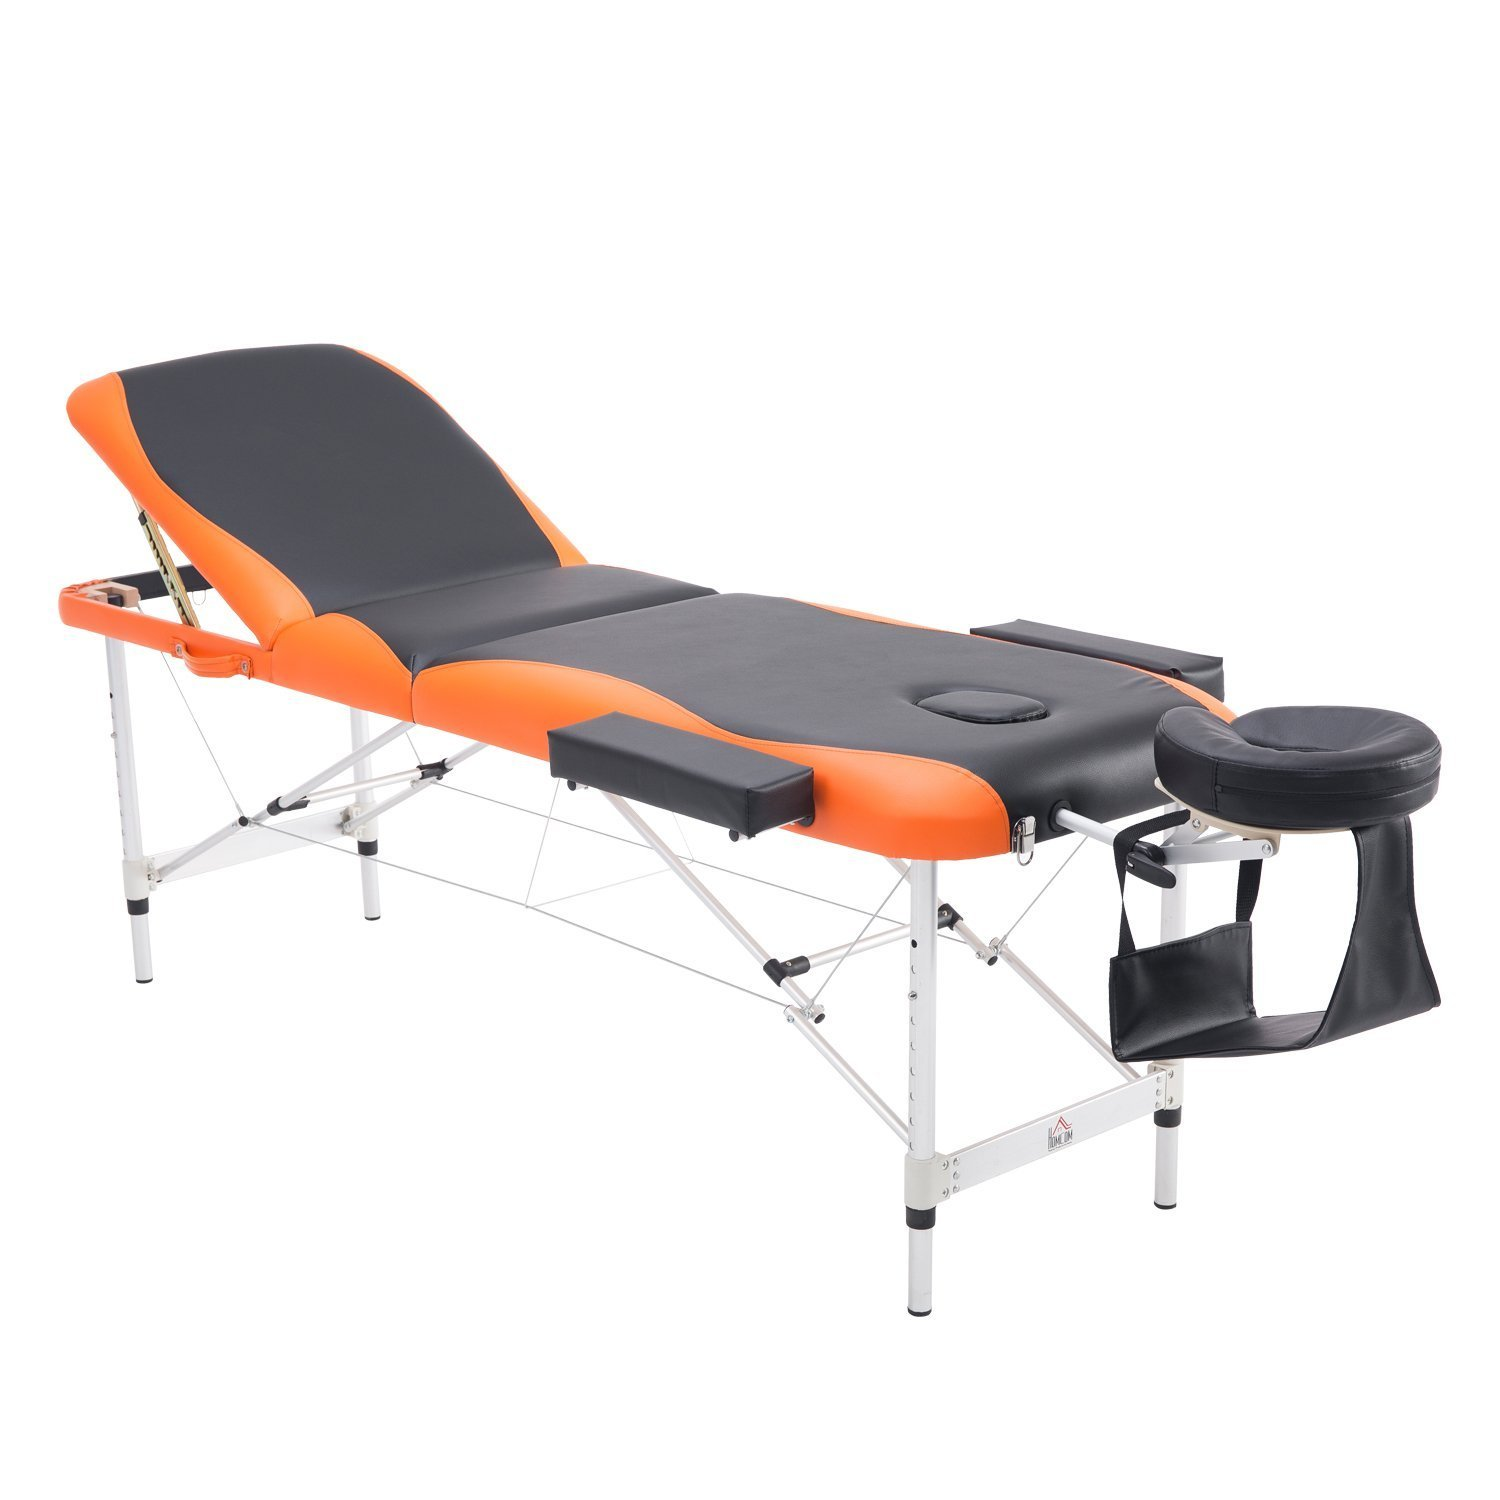 HOMCOM 700-039RD 73 3 Section Foldable Massage Table Professional Salon Spa Facial Couch Bed (Black/Red) Aosom Canada CA700-039RD0231